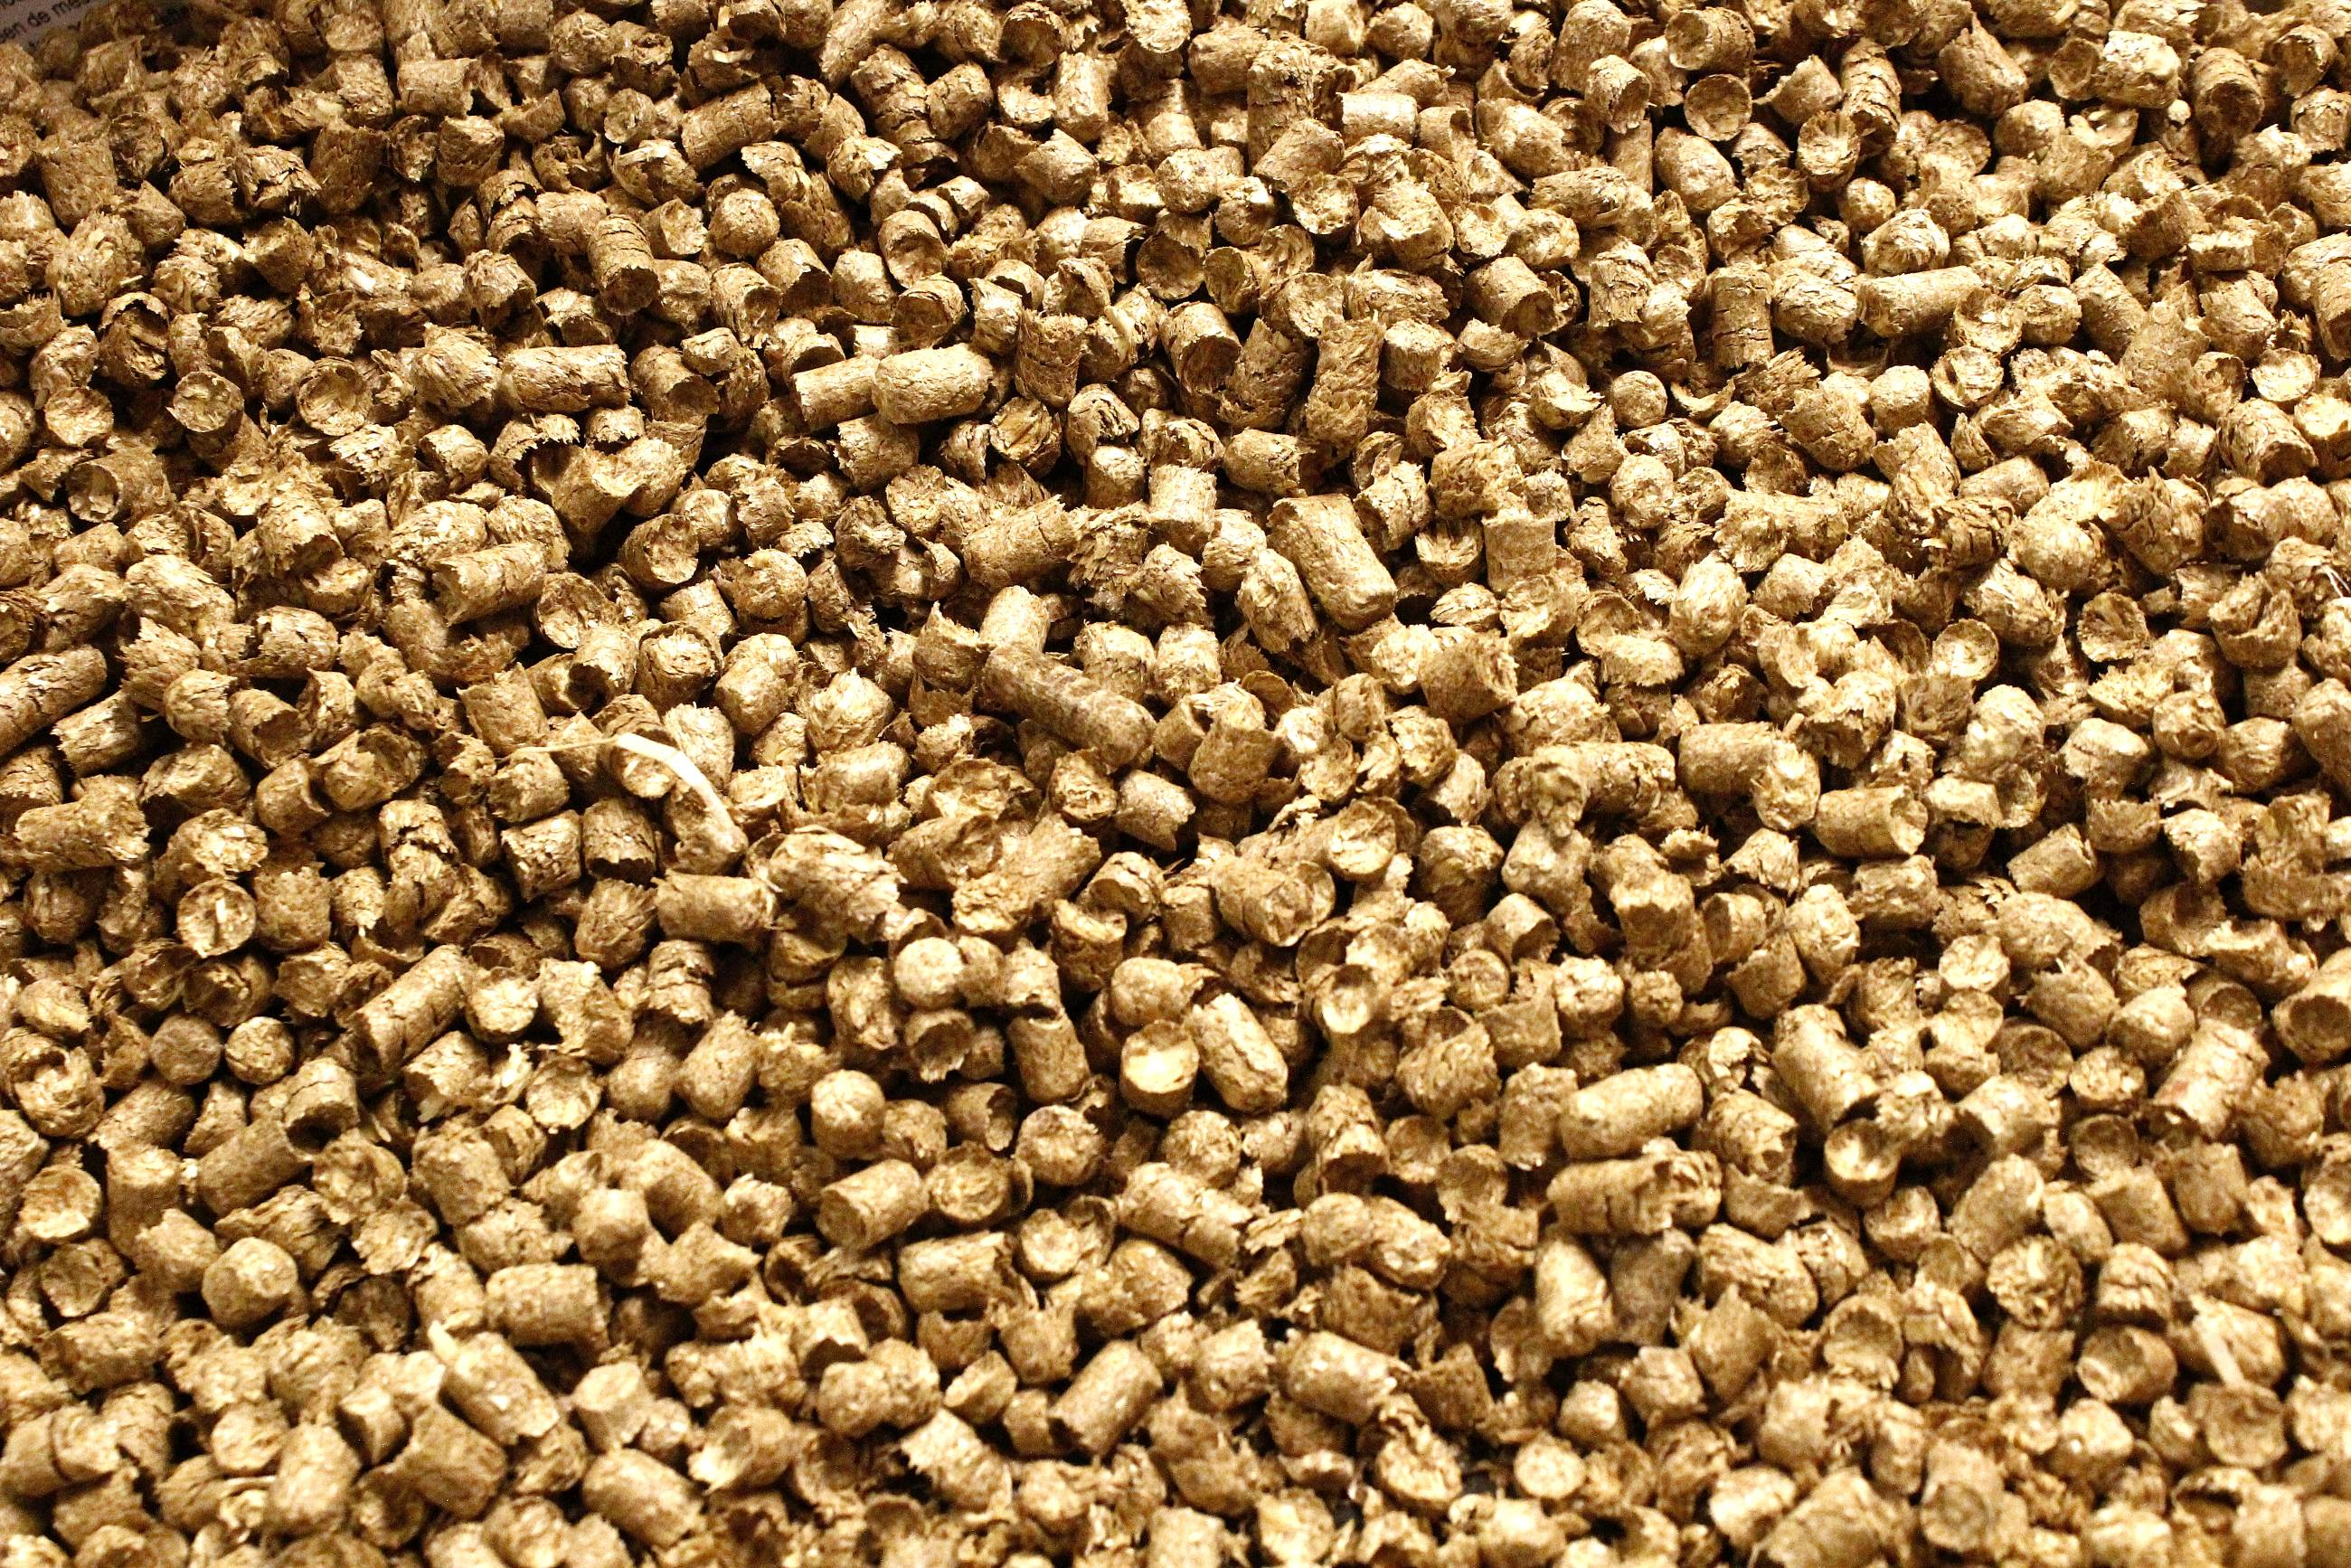 Strovan stropellets in bigbag